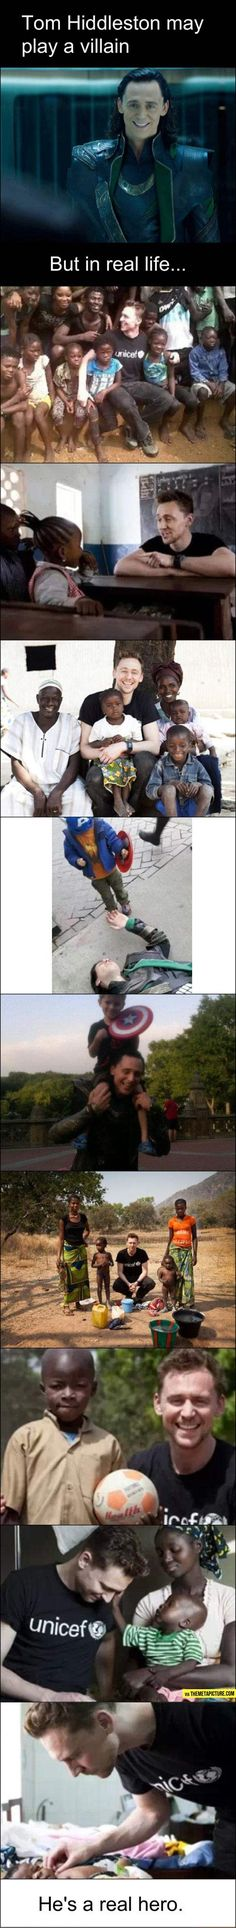 I don't normally obsess over actors but this is just so amazing. You're a good guy Tom Hiddleston.